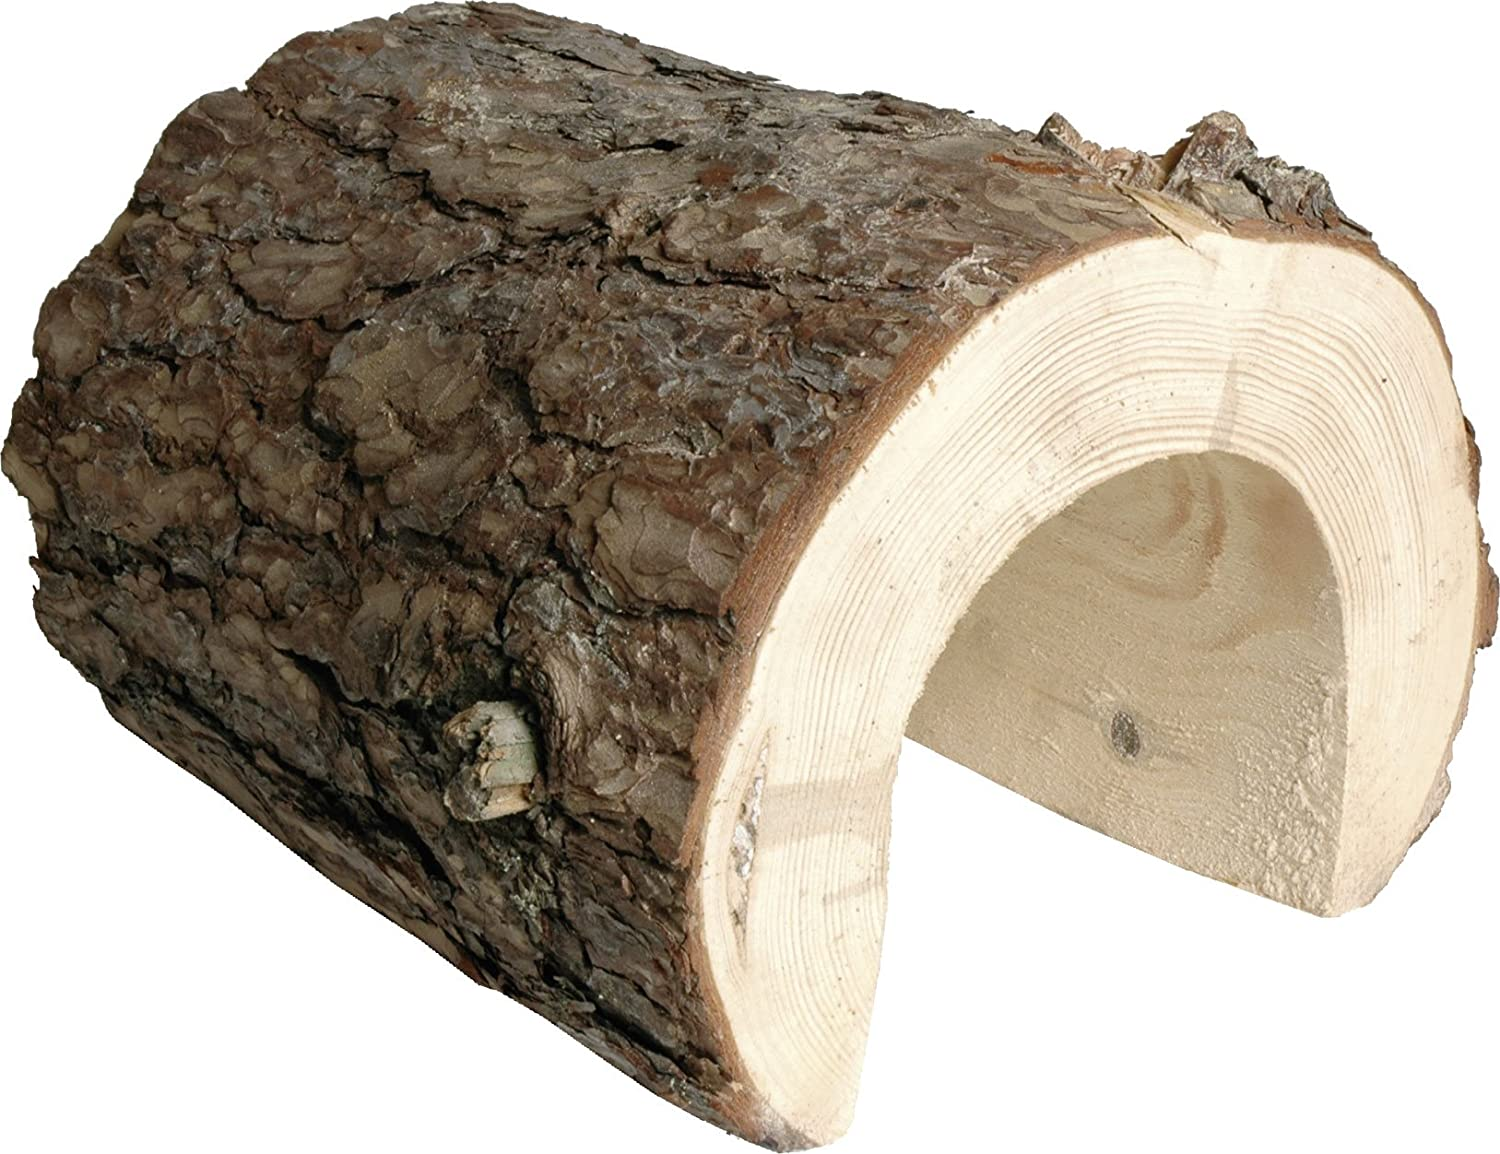 dobar 80090Natural Mega Rabbit Tunnel for Rodents with Pine Bark, 30x 28x 28cm brown